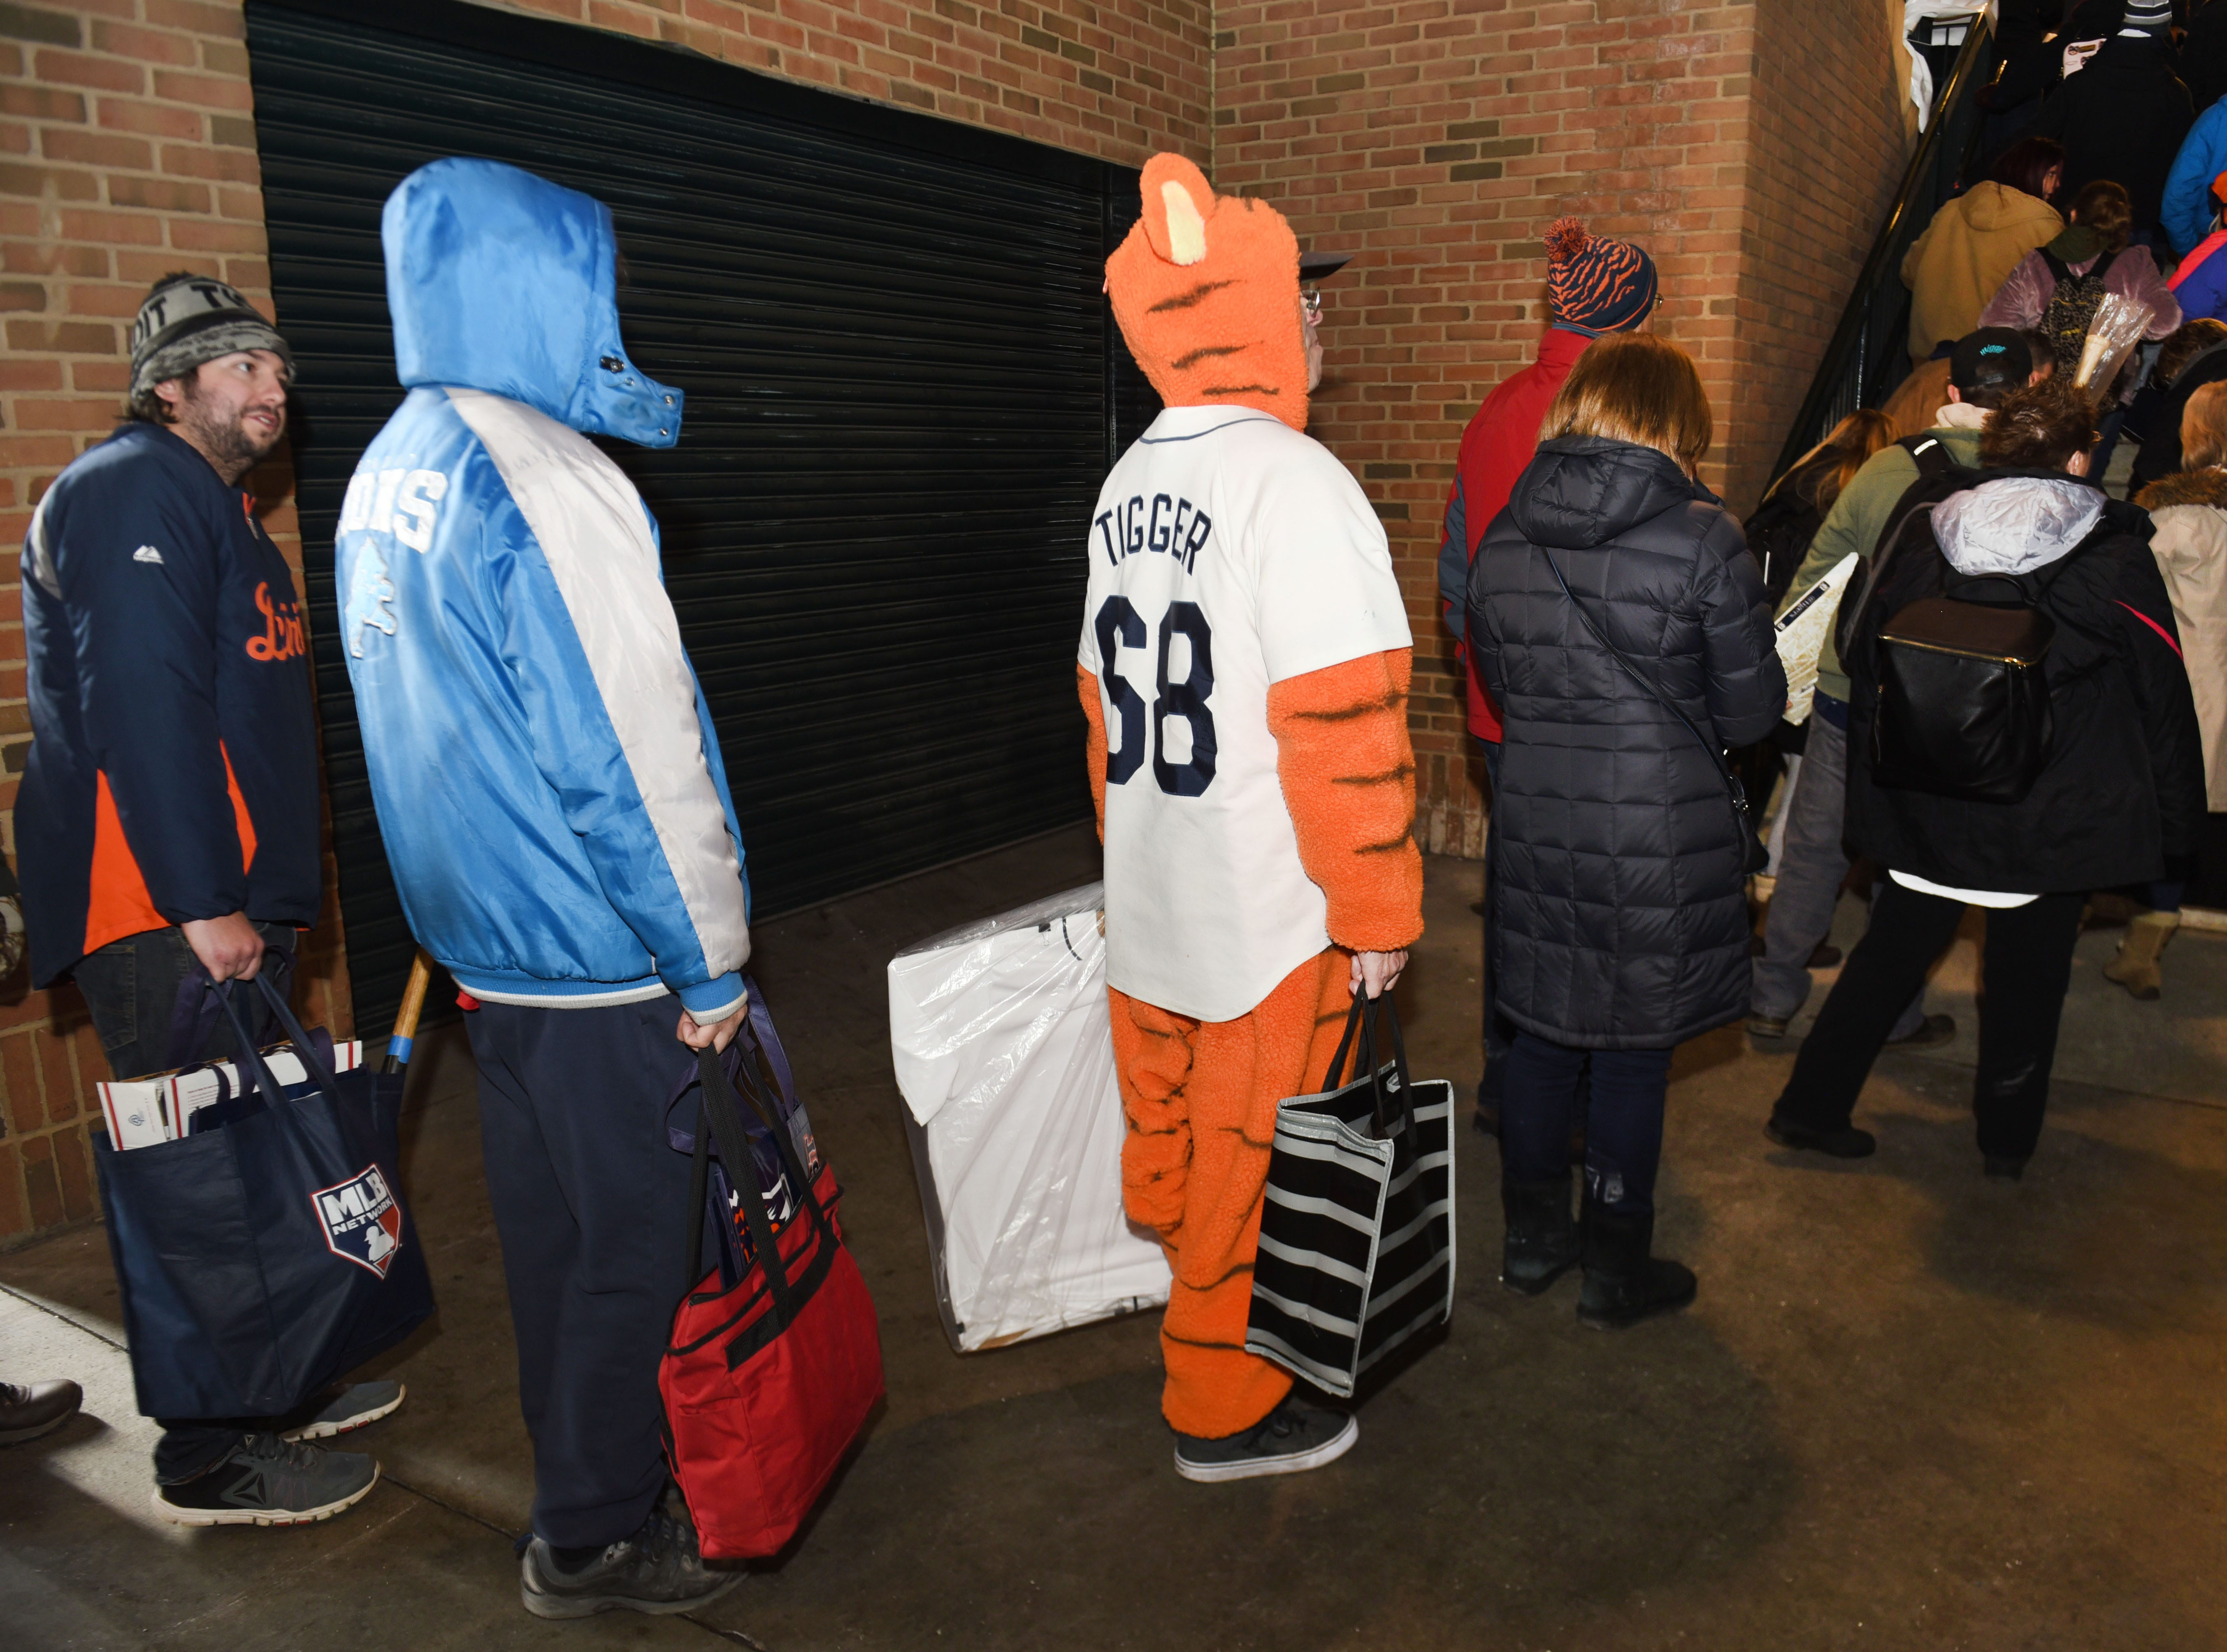 Steve Piippo of Dearborn Heights wears his Tigger uniform at Comerica Park for TigerFest.